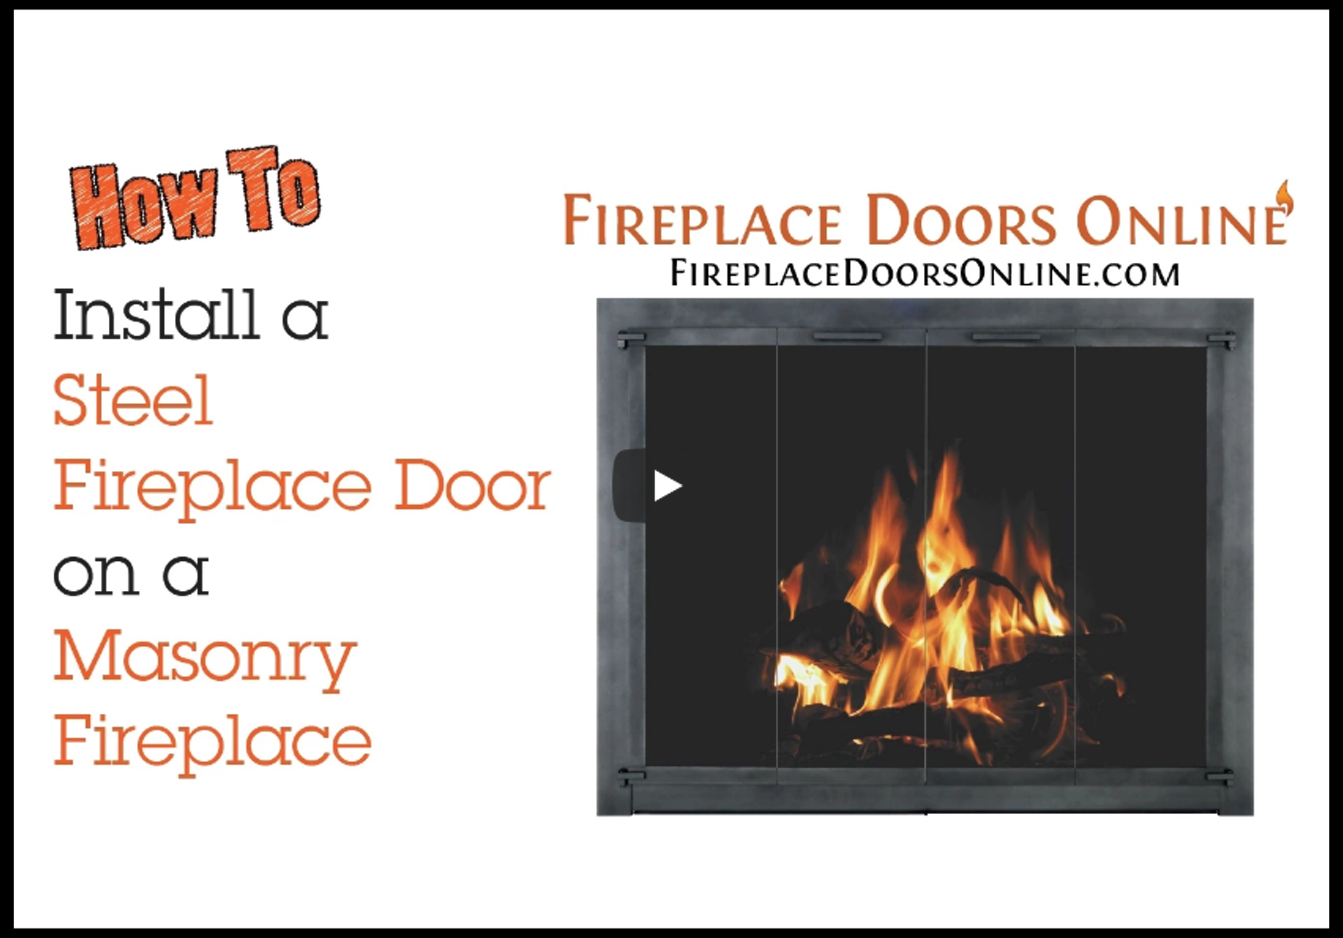 How to Install A Steel Fireplace Door in a Masonry Fireplace